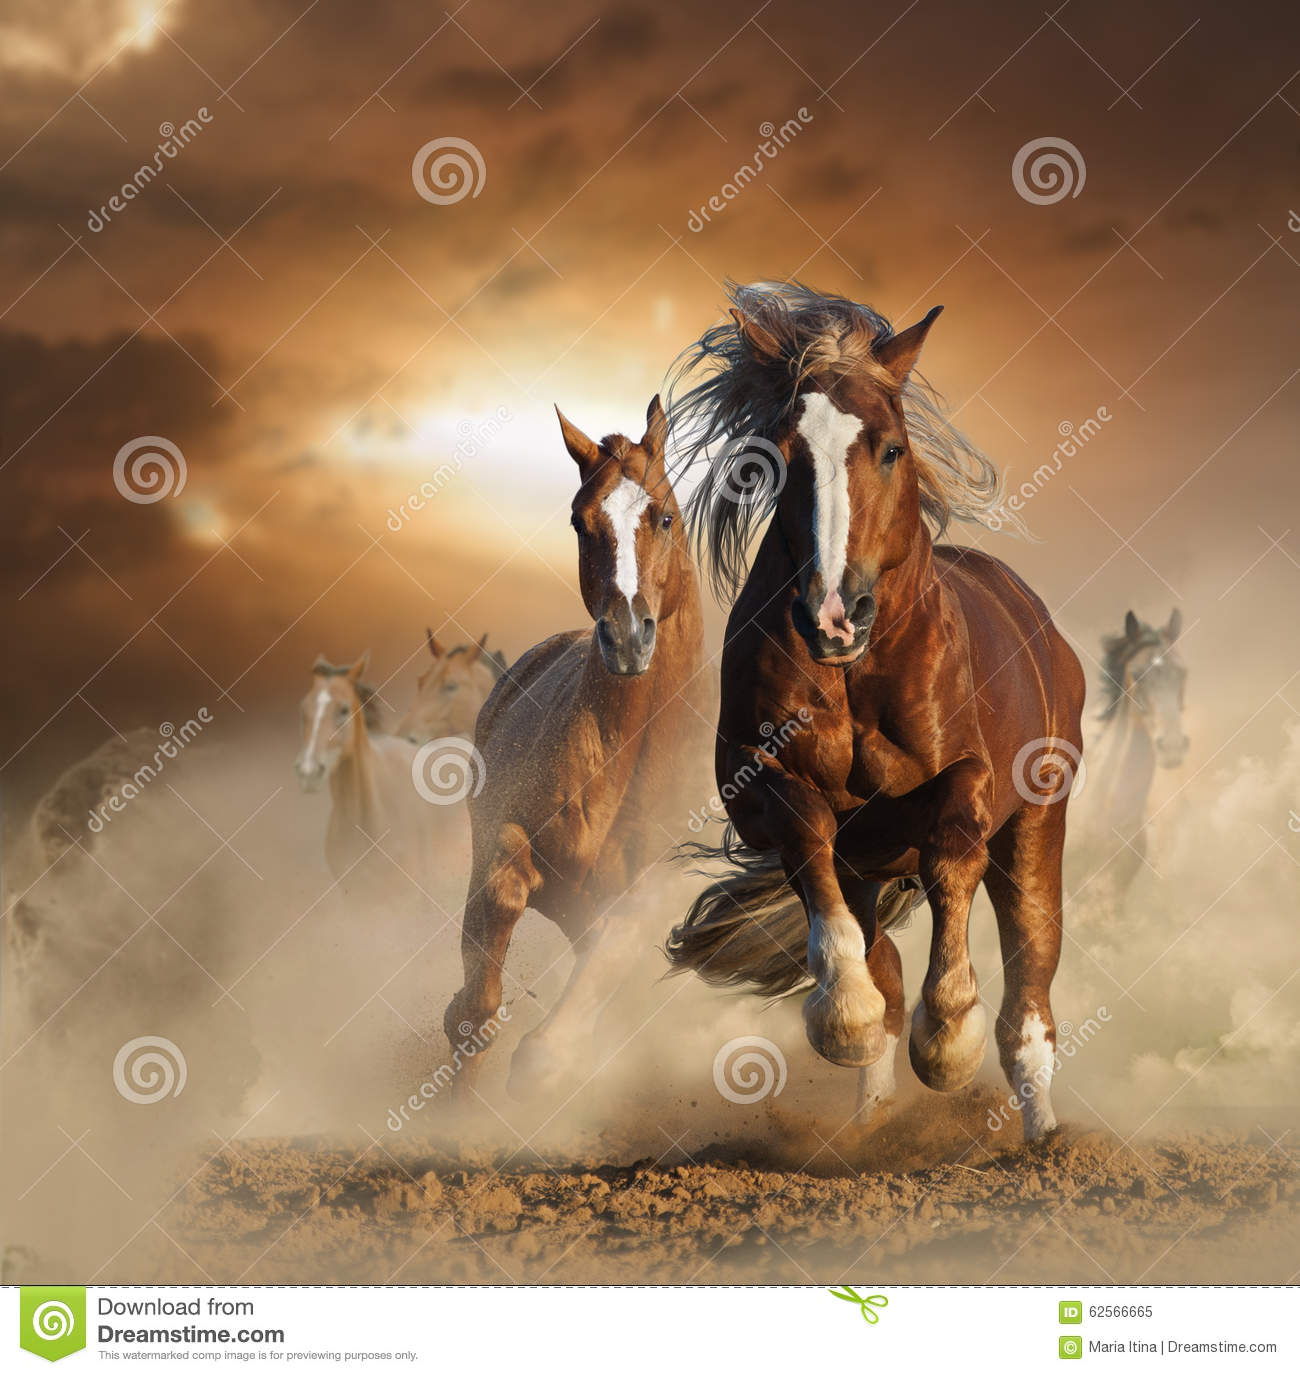 Download Two Wild Chestnut Horses Running Together In Dust Stock Image - Image of competition, purebred: 62566665